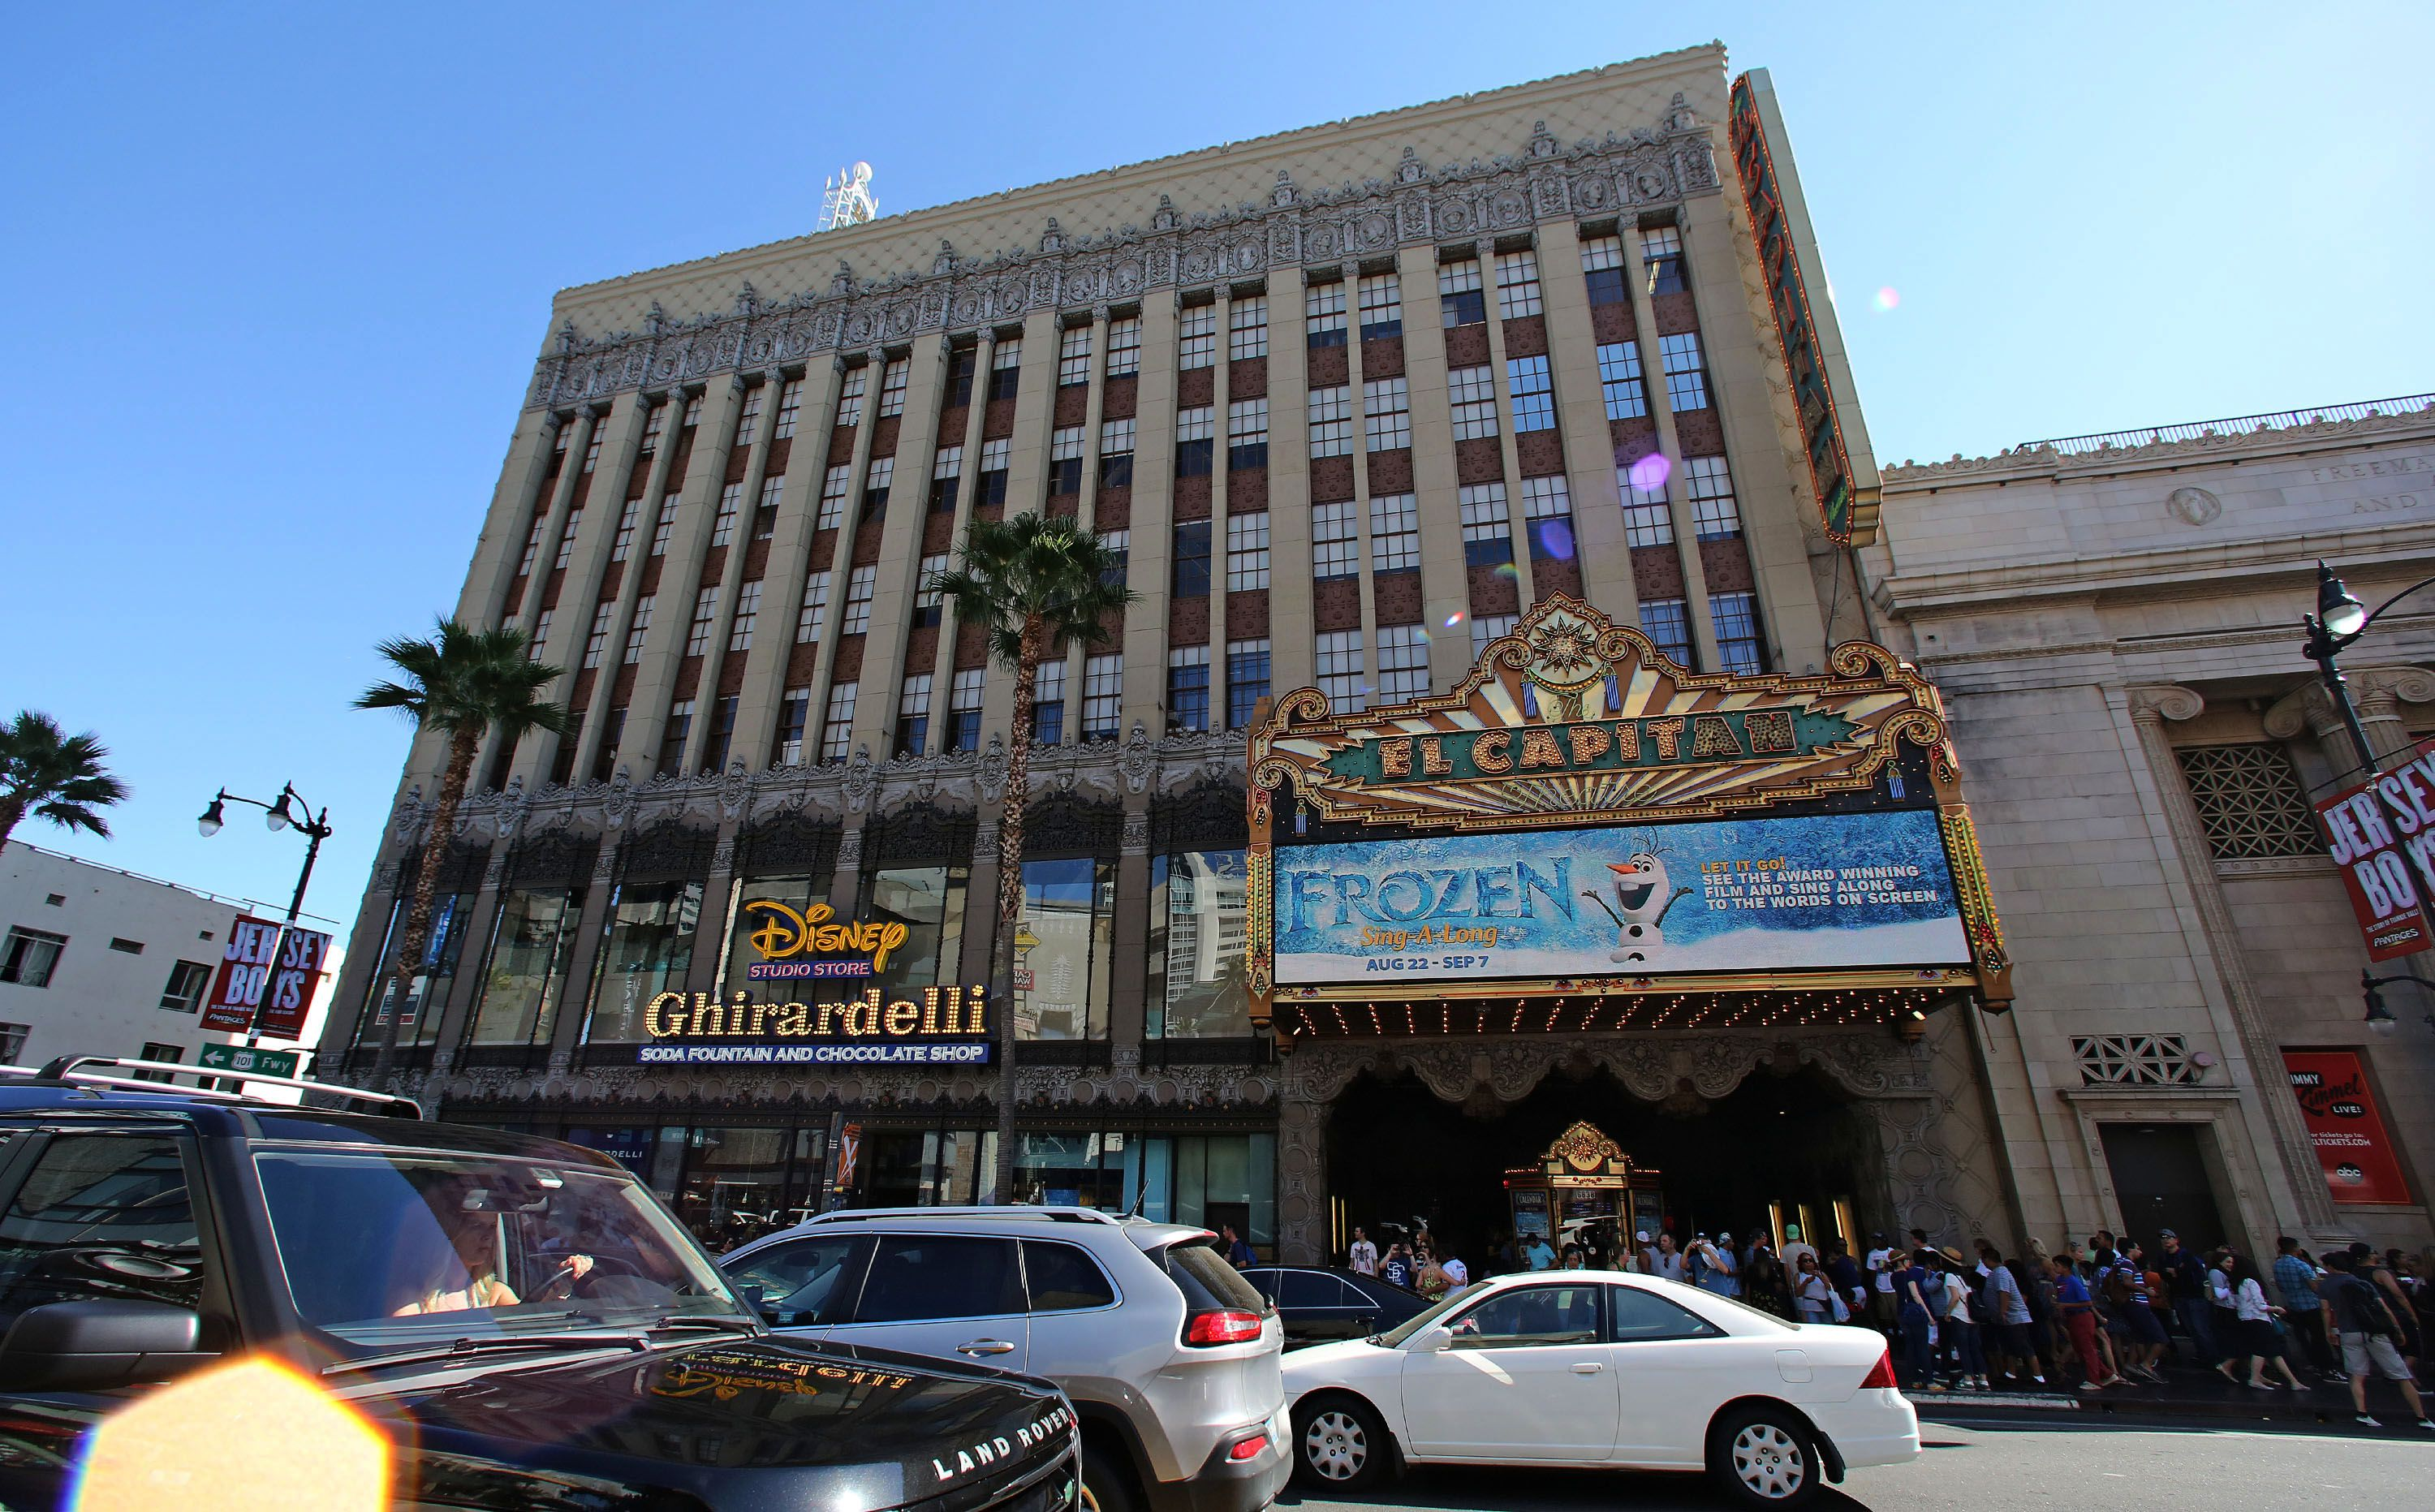 A view of El Capitan Theatre on September 01, 2014 in Los Angeles, California